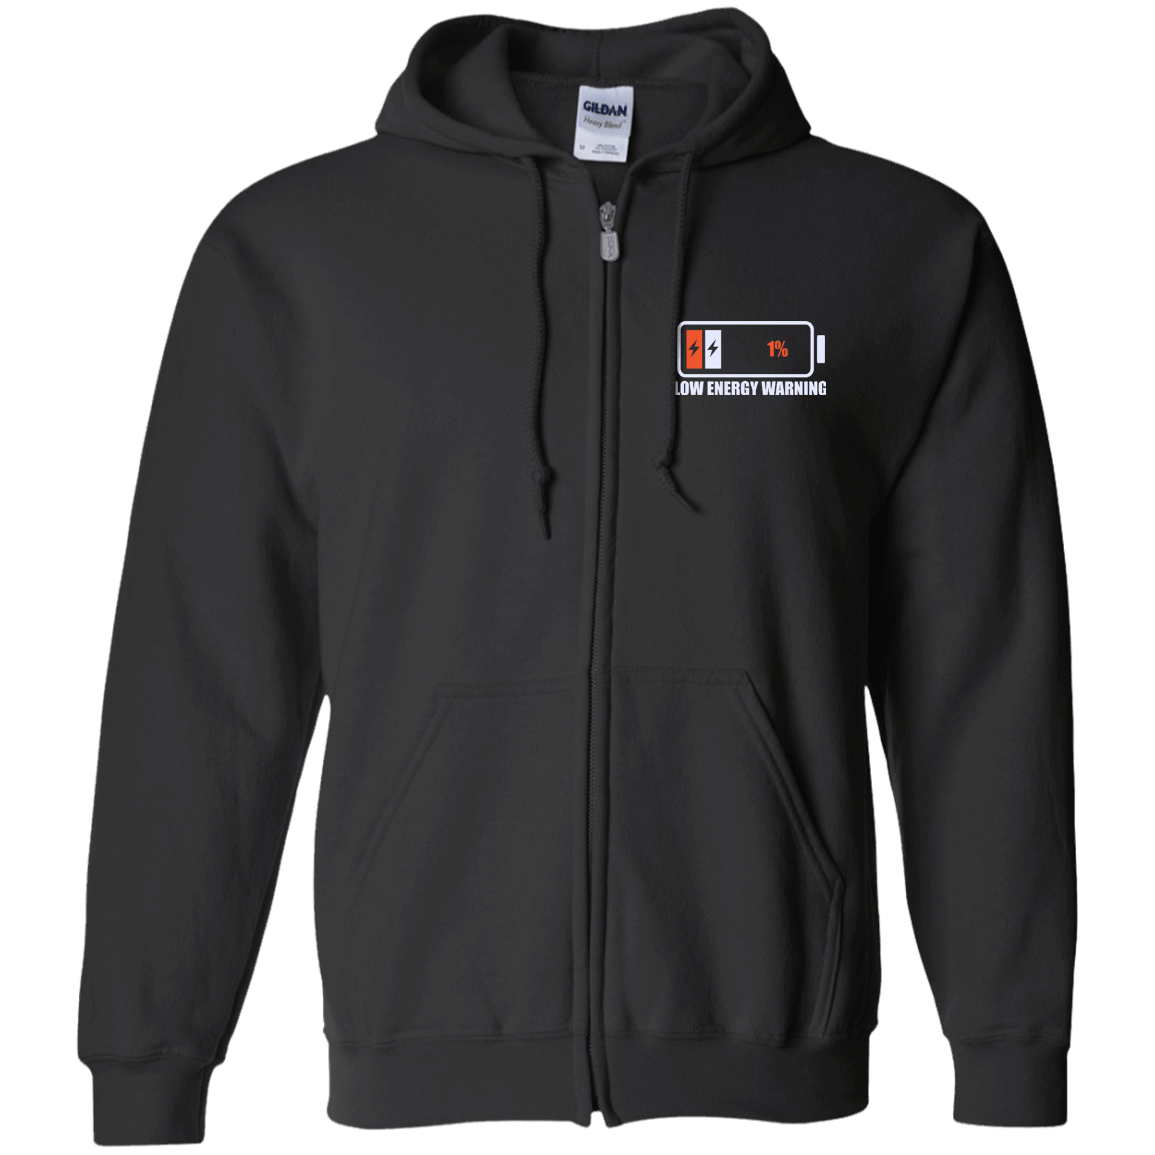 Sweatshirts - Low Energy Warning Zip Up Hooded Sweatshirt